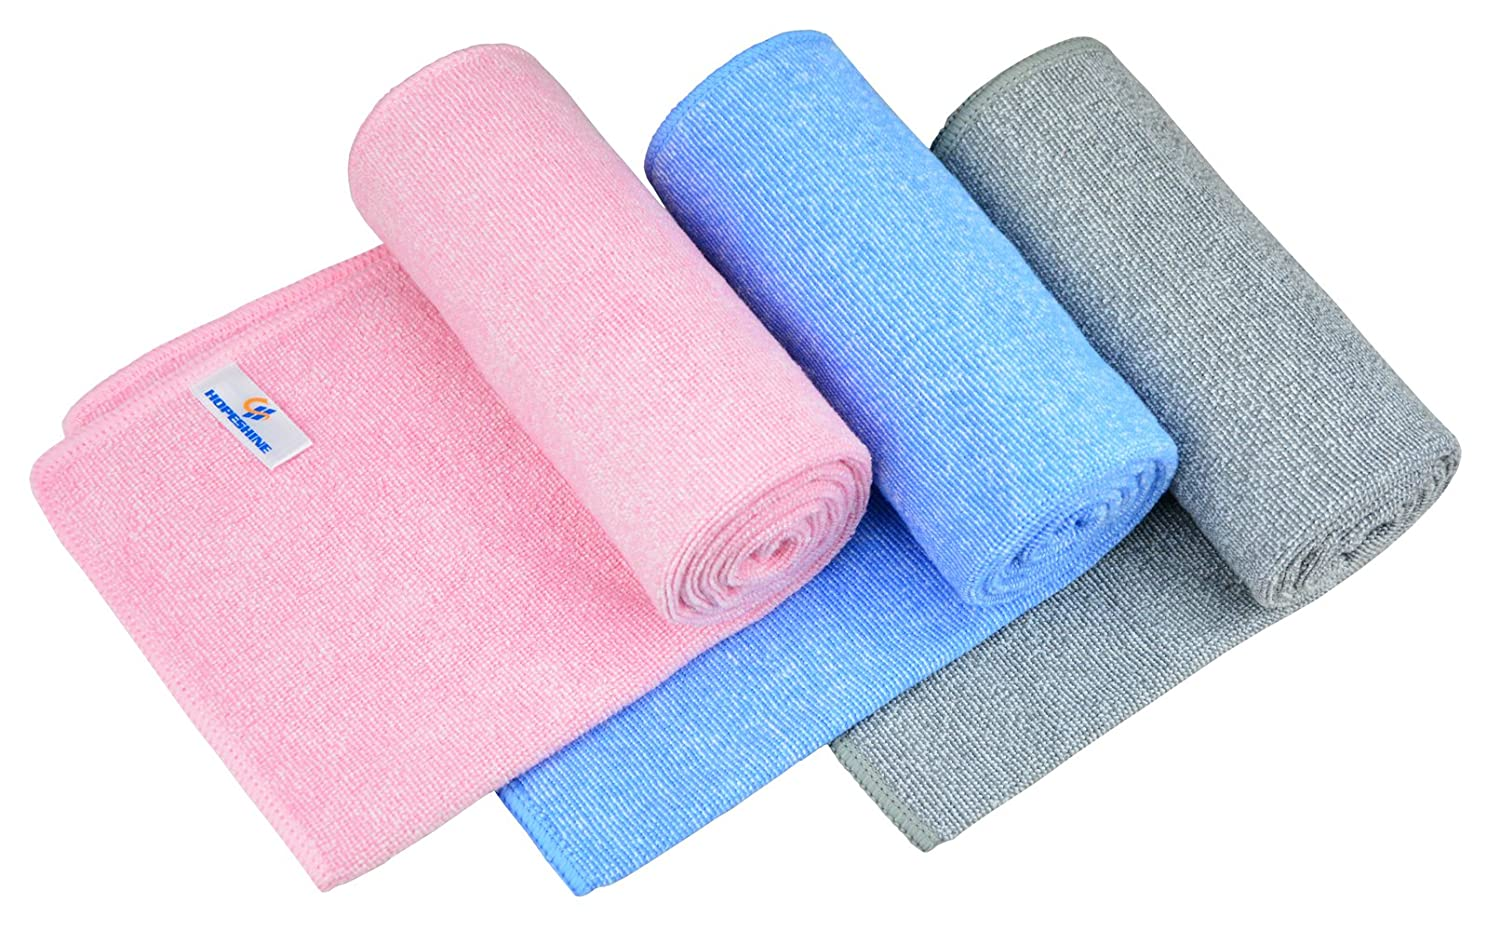 Hopeshine Microfiber Gym Towels